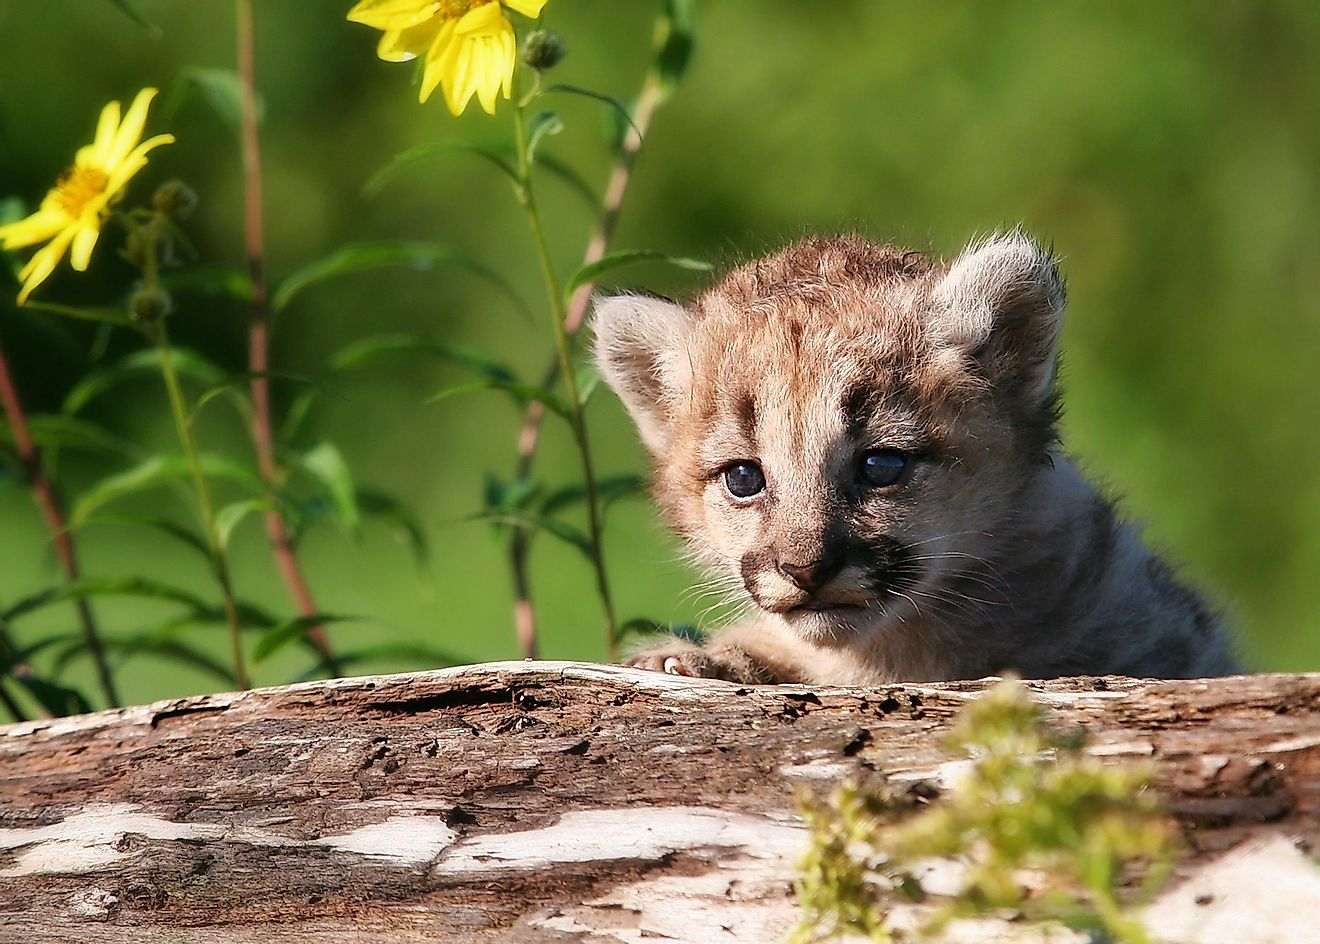 Young mountain lion kitten